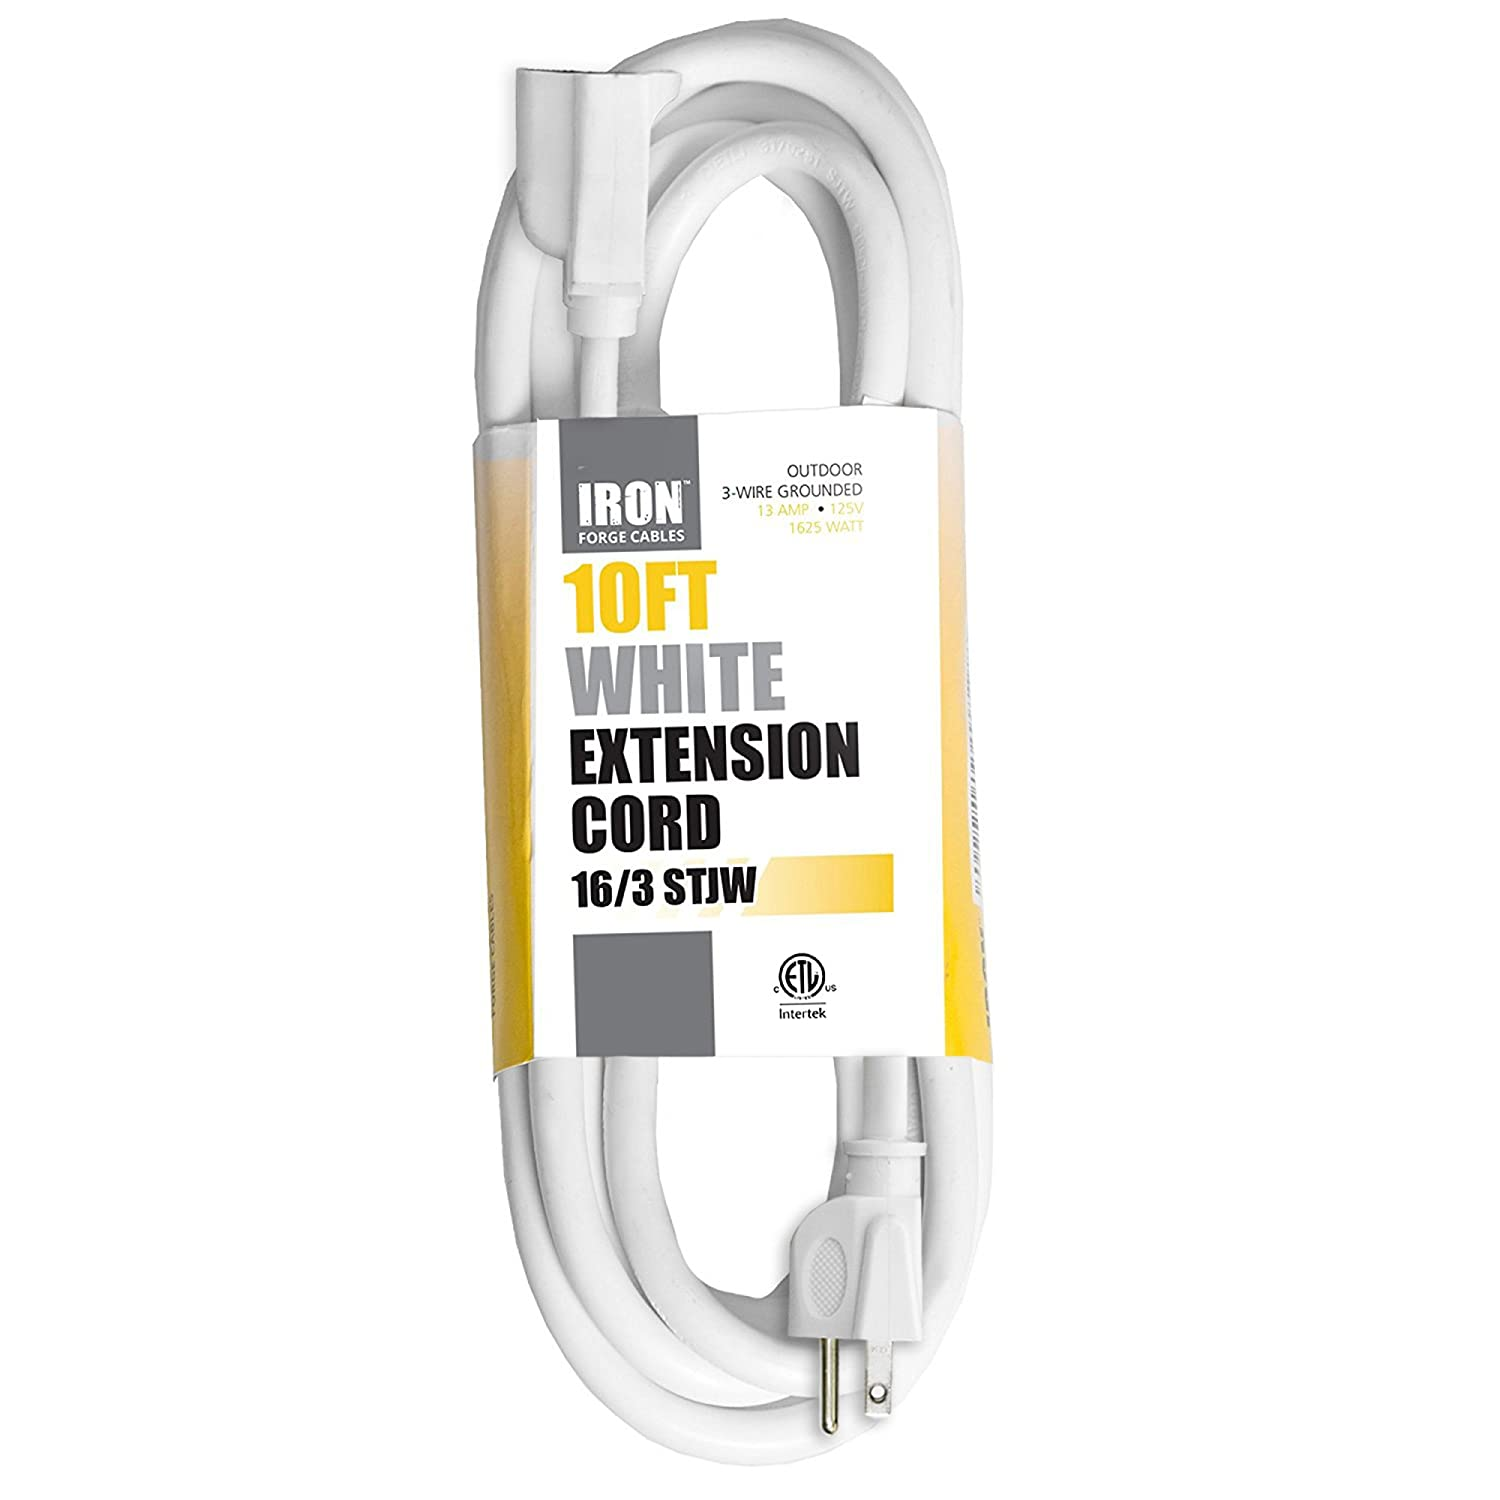 10 Ft White Extension Cord - 16/3 Durable Electrical Cable ...